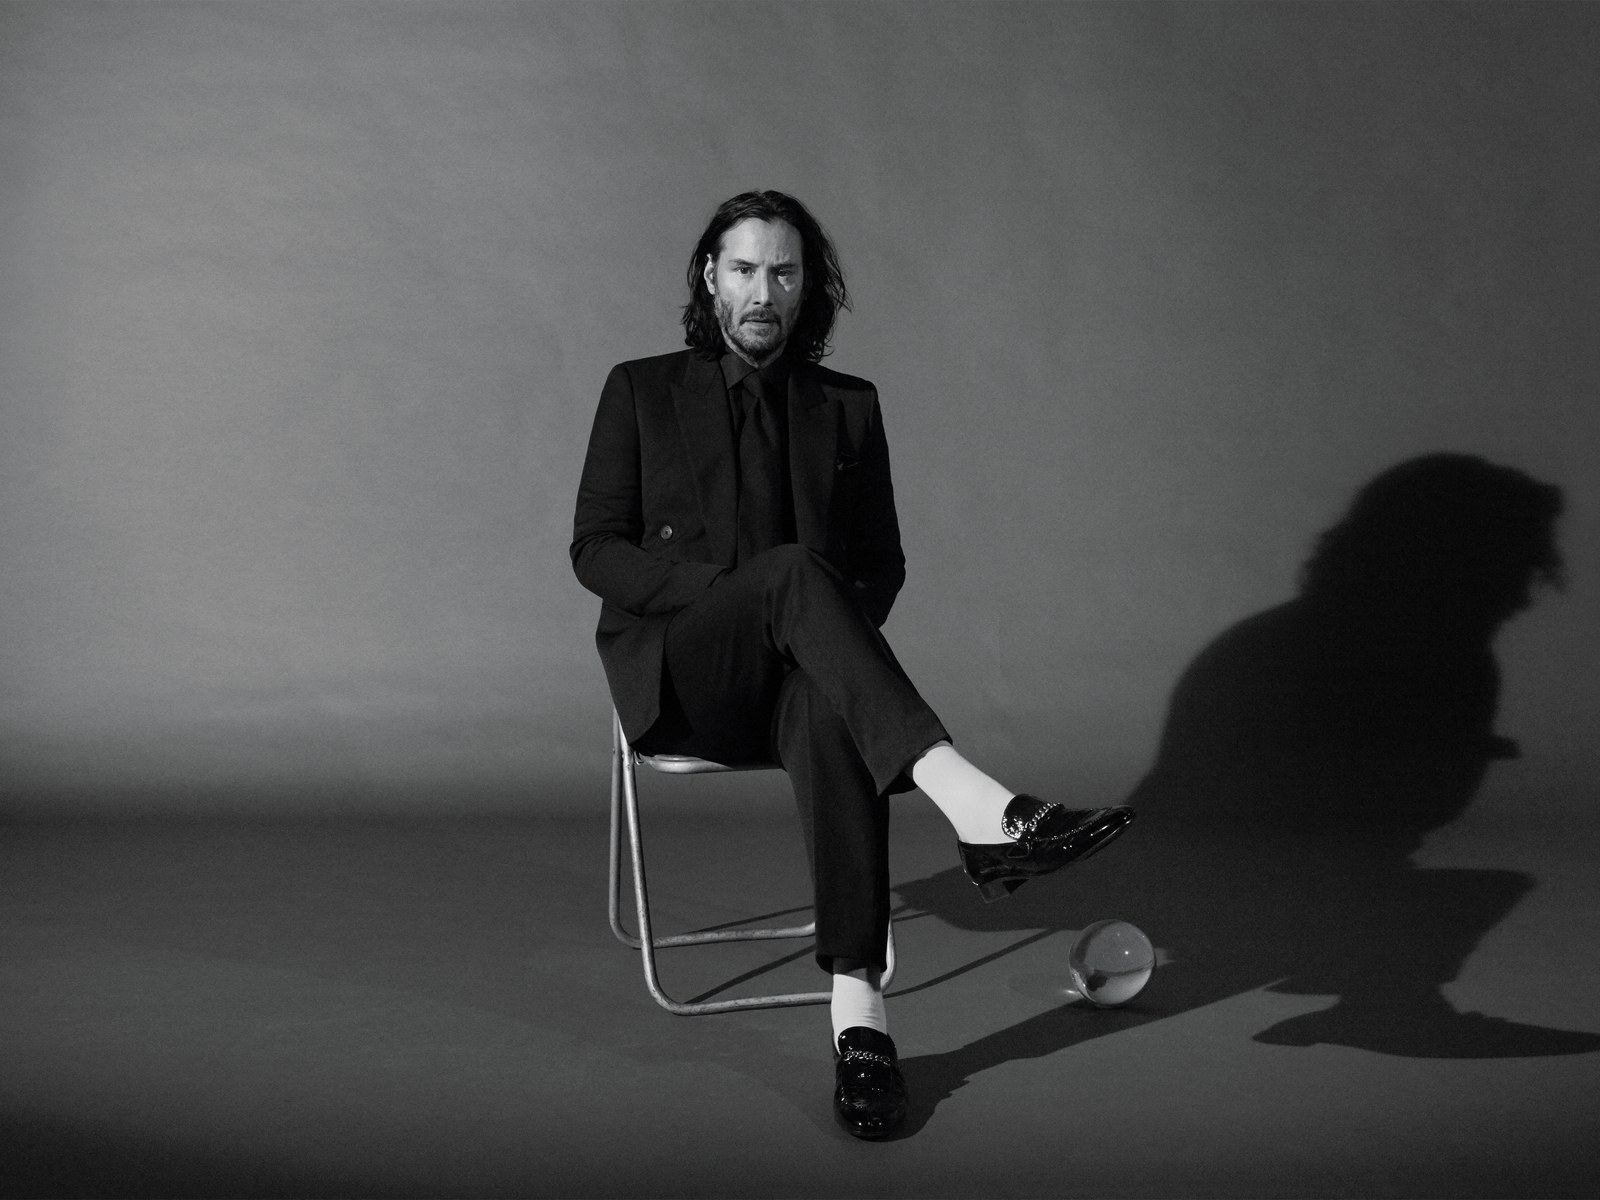 A recent photo shoot of Keanu